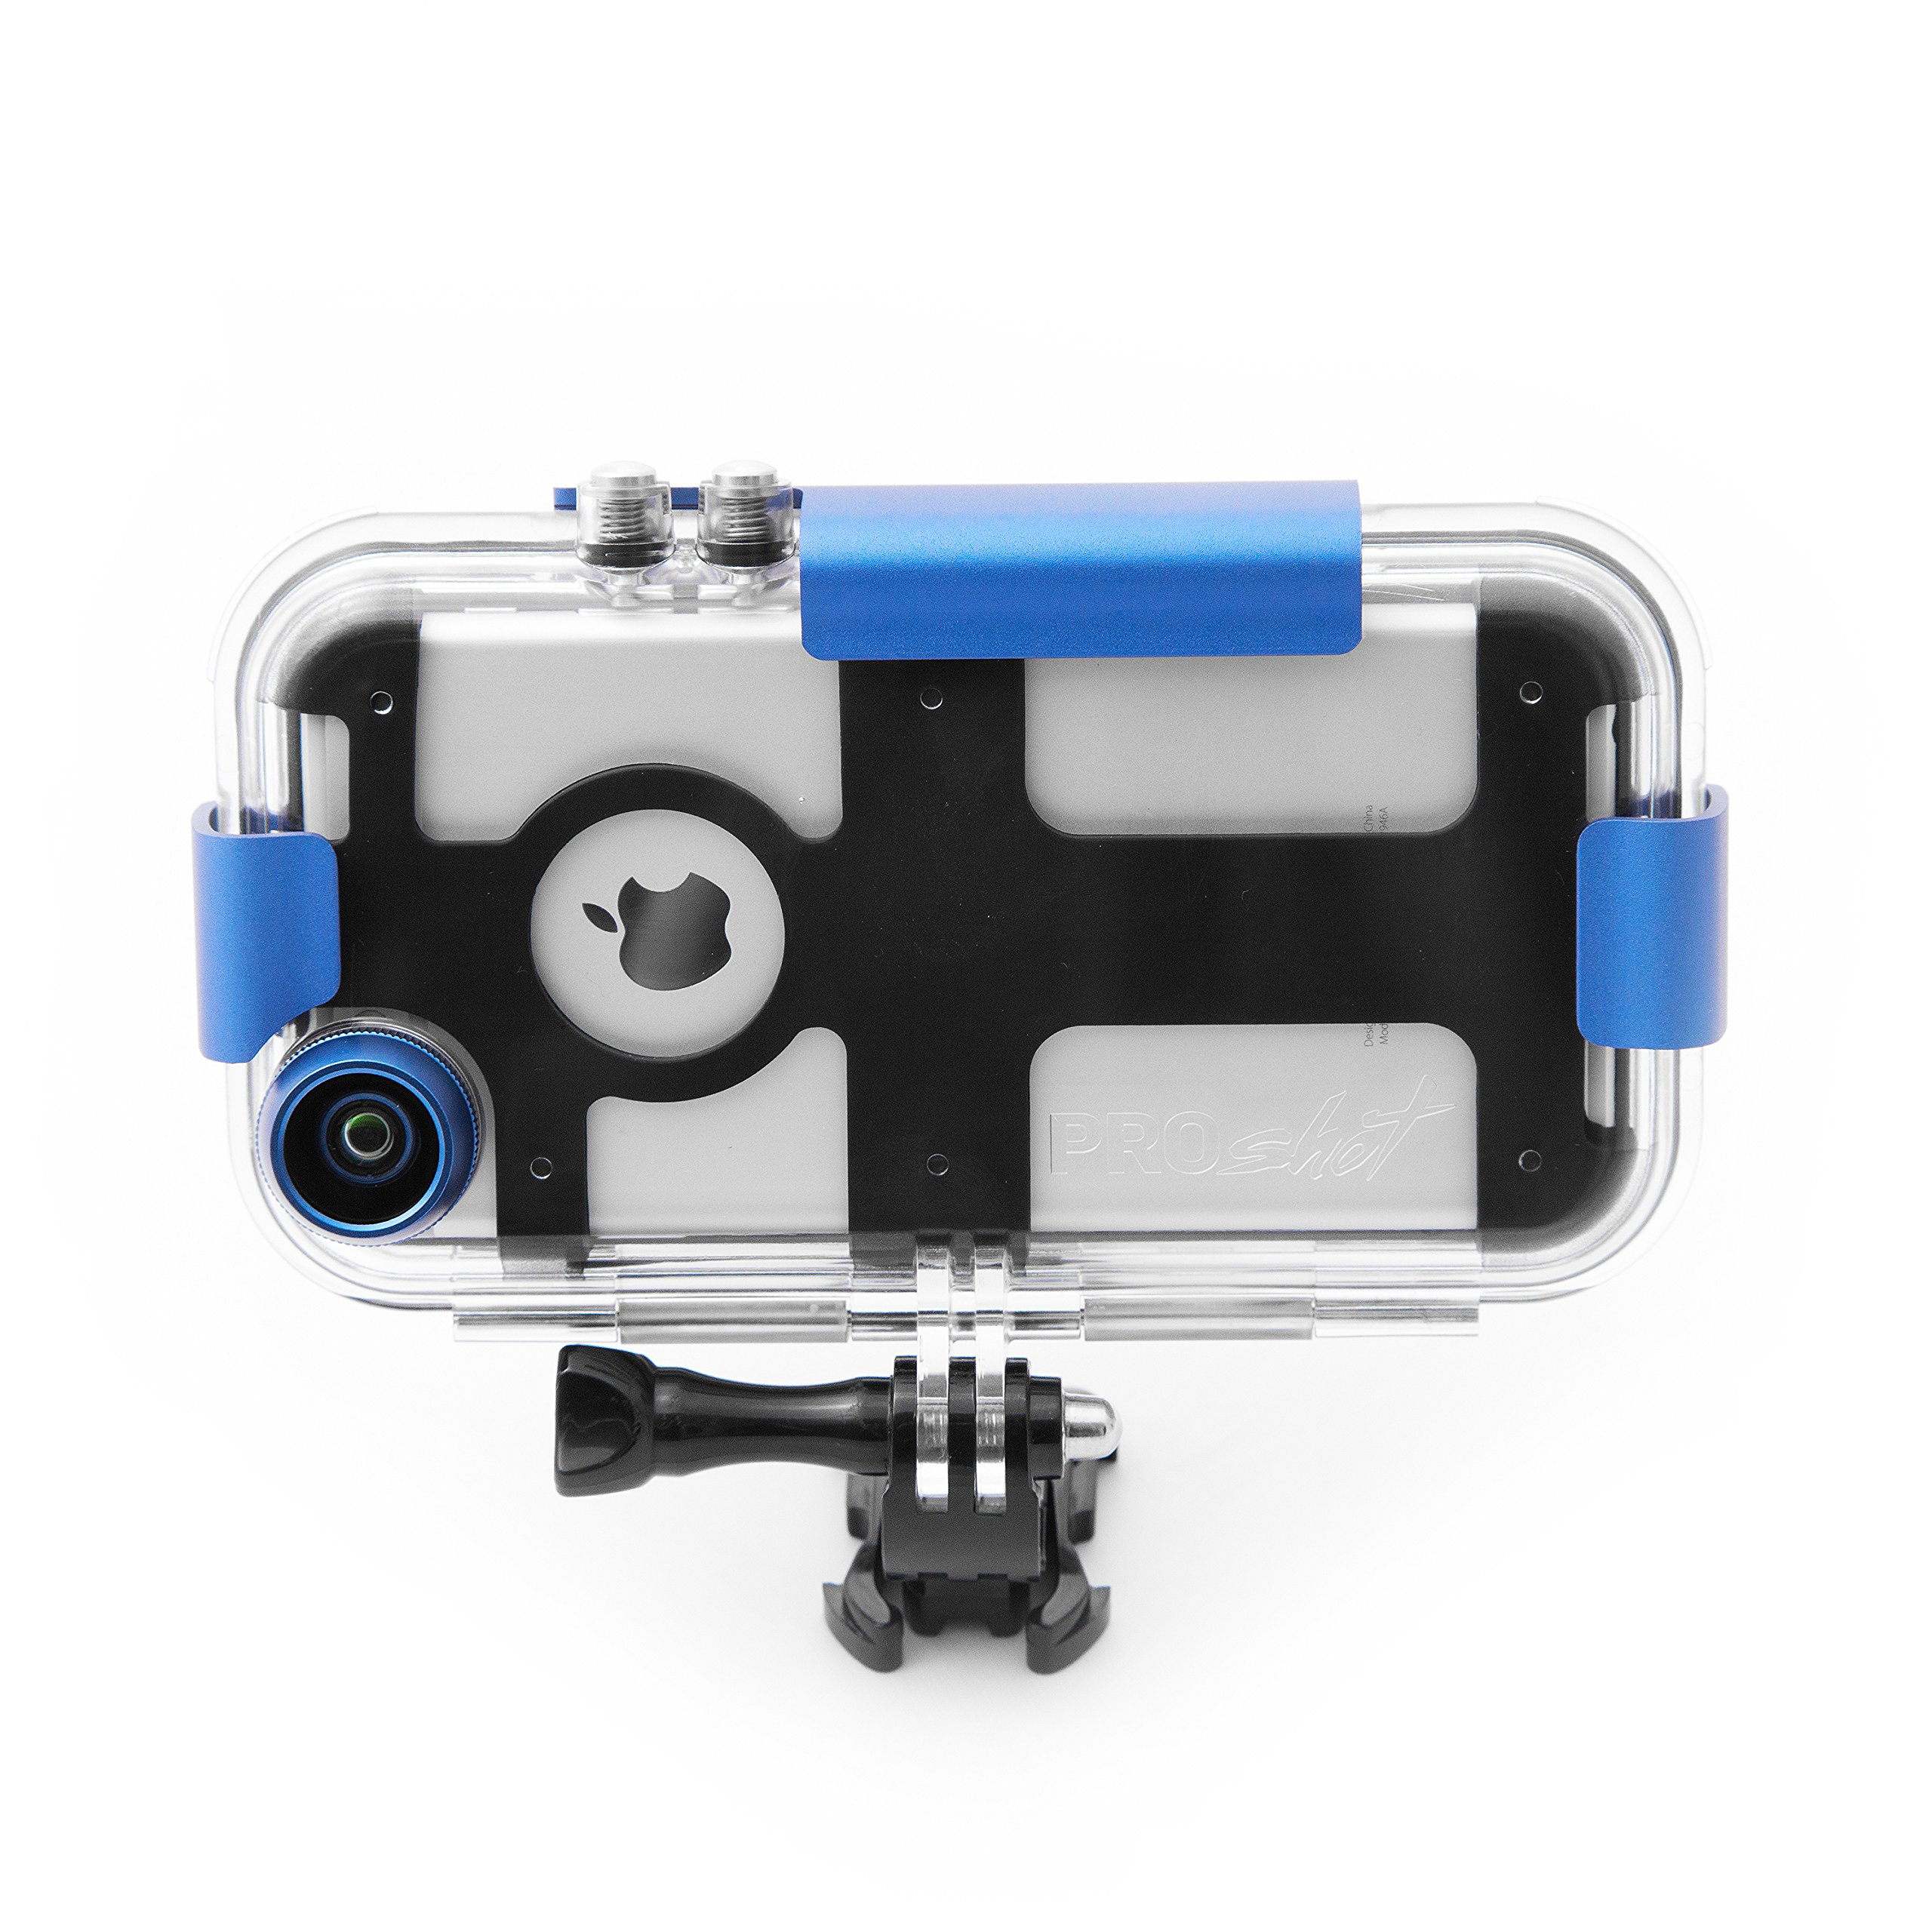 ProShot Dive Waterproof and GoPro Mountable Case for the iPhone 6/6s